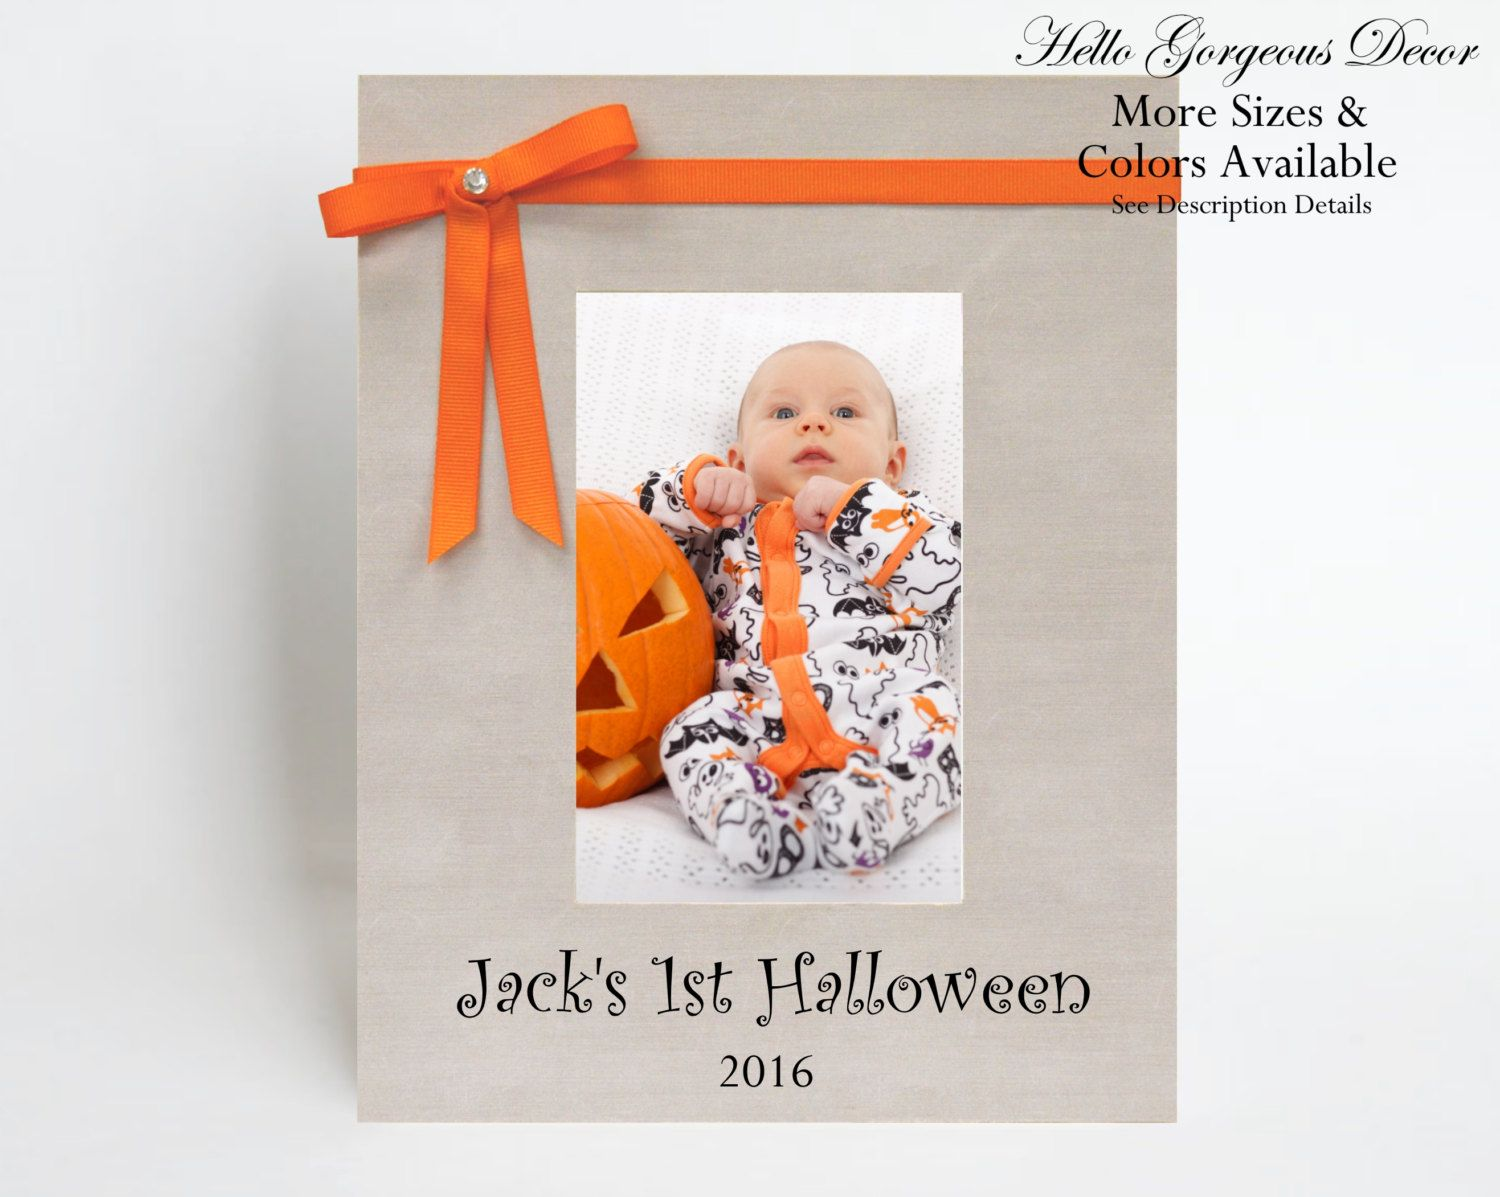 20 best halloween ideas images on pinterest halloween ideas 20 best halloween ideas images on pinterest halloween ideas halloween prop and personalized photo frames jeuxipadfo Choice Image